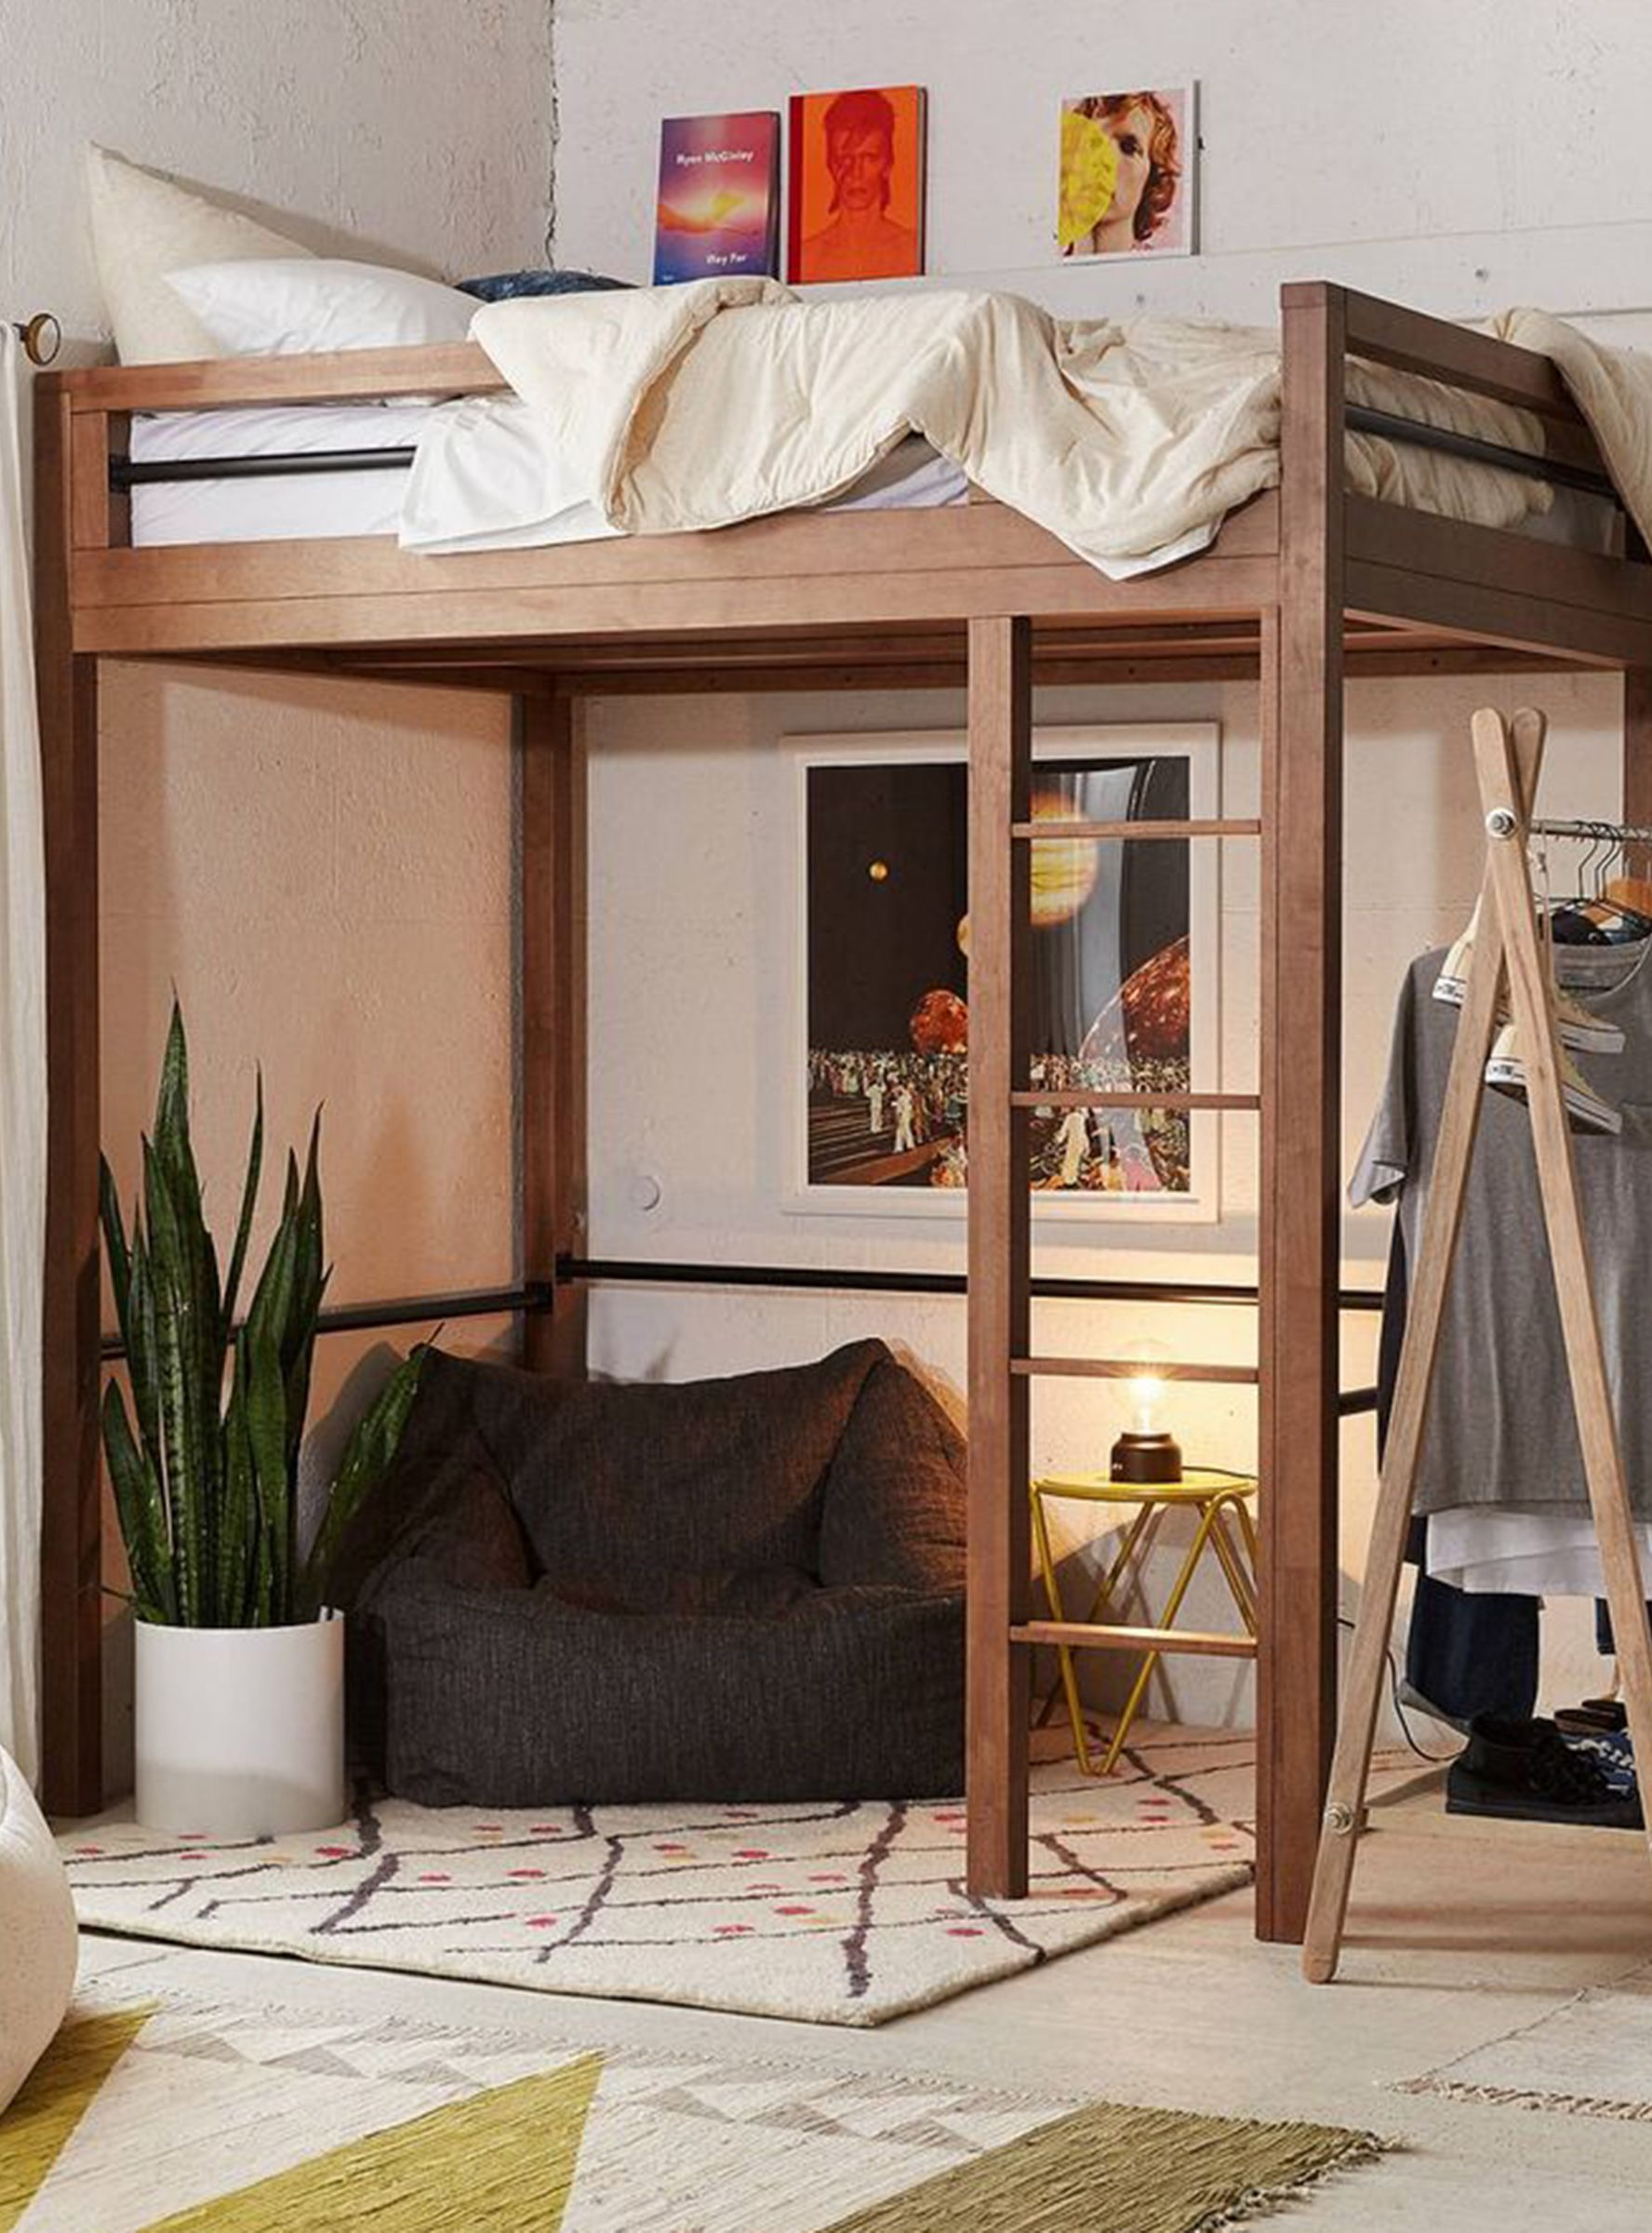 7 Decorating Ideas For Your GrownUp Loft Bed Adult loft